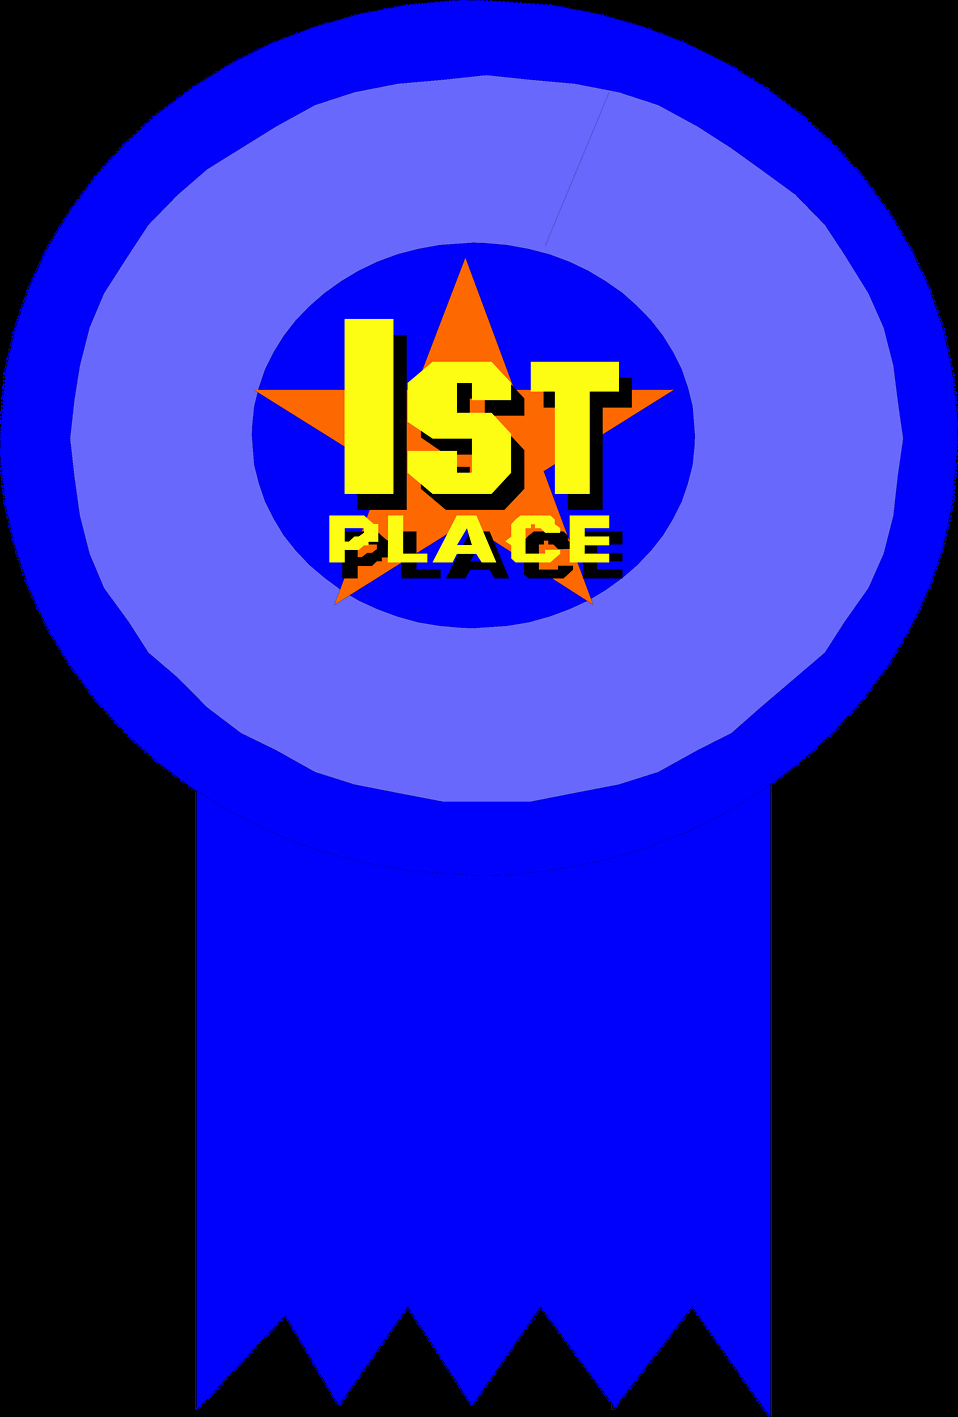 2nd Place Ribbon Png Inspirational Award Free Stock